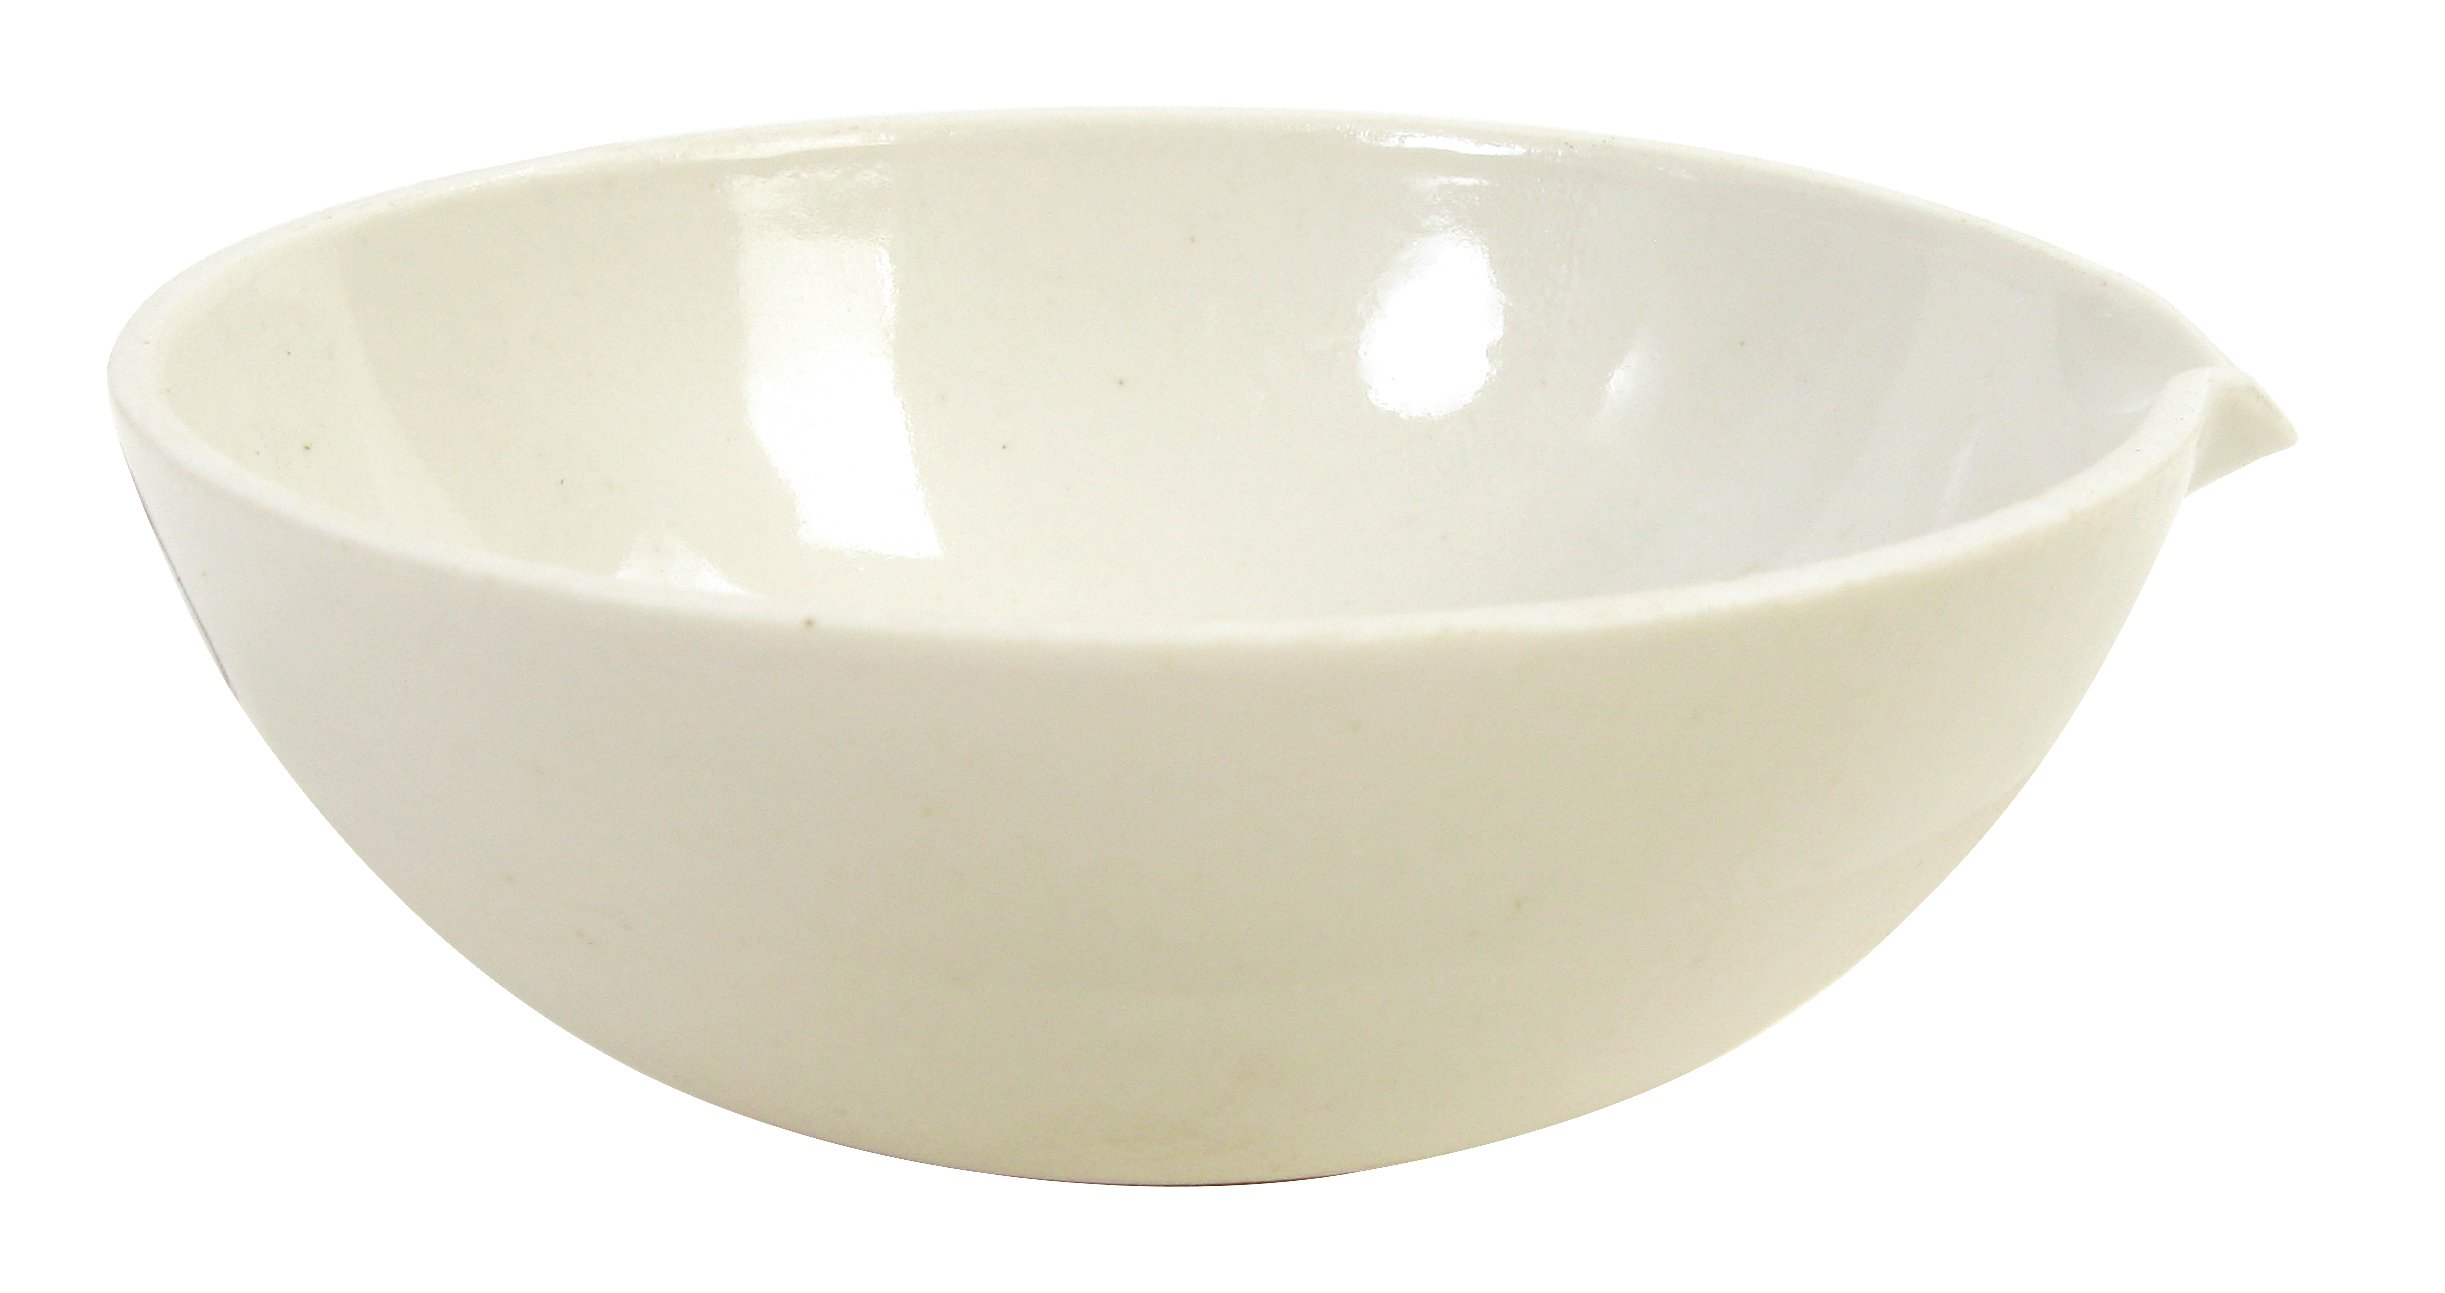 American Educational Porcelain Evaporation Dish, 74mm Diameter X 30mm Height, 60ml Capacity